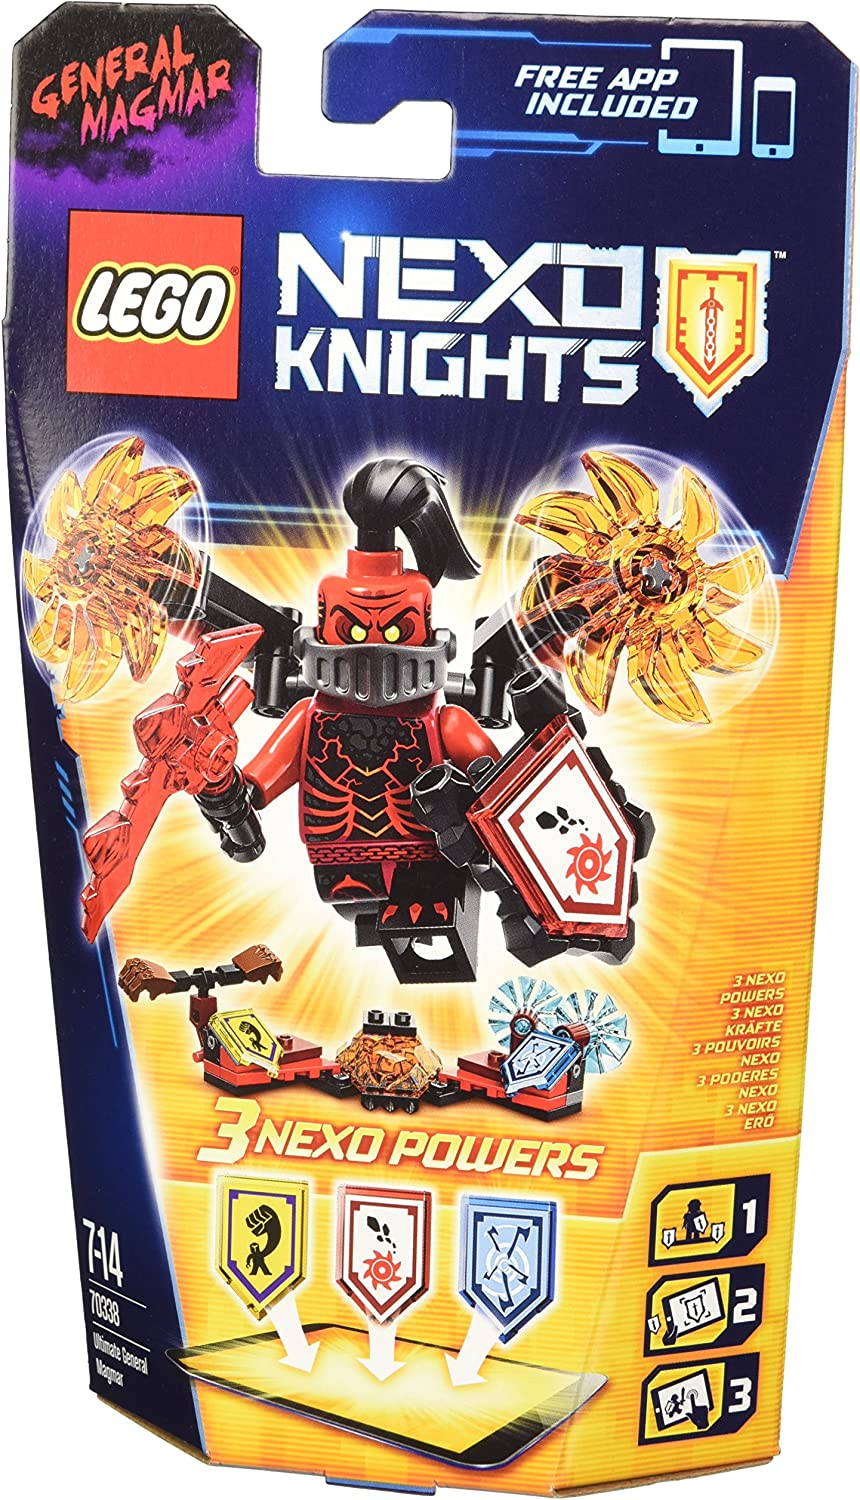 LEGO Nexo Knights - Ultimate General Magmar